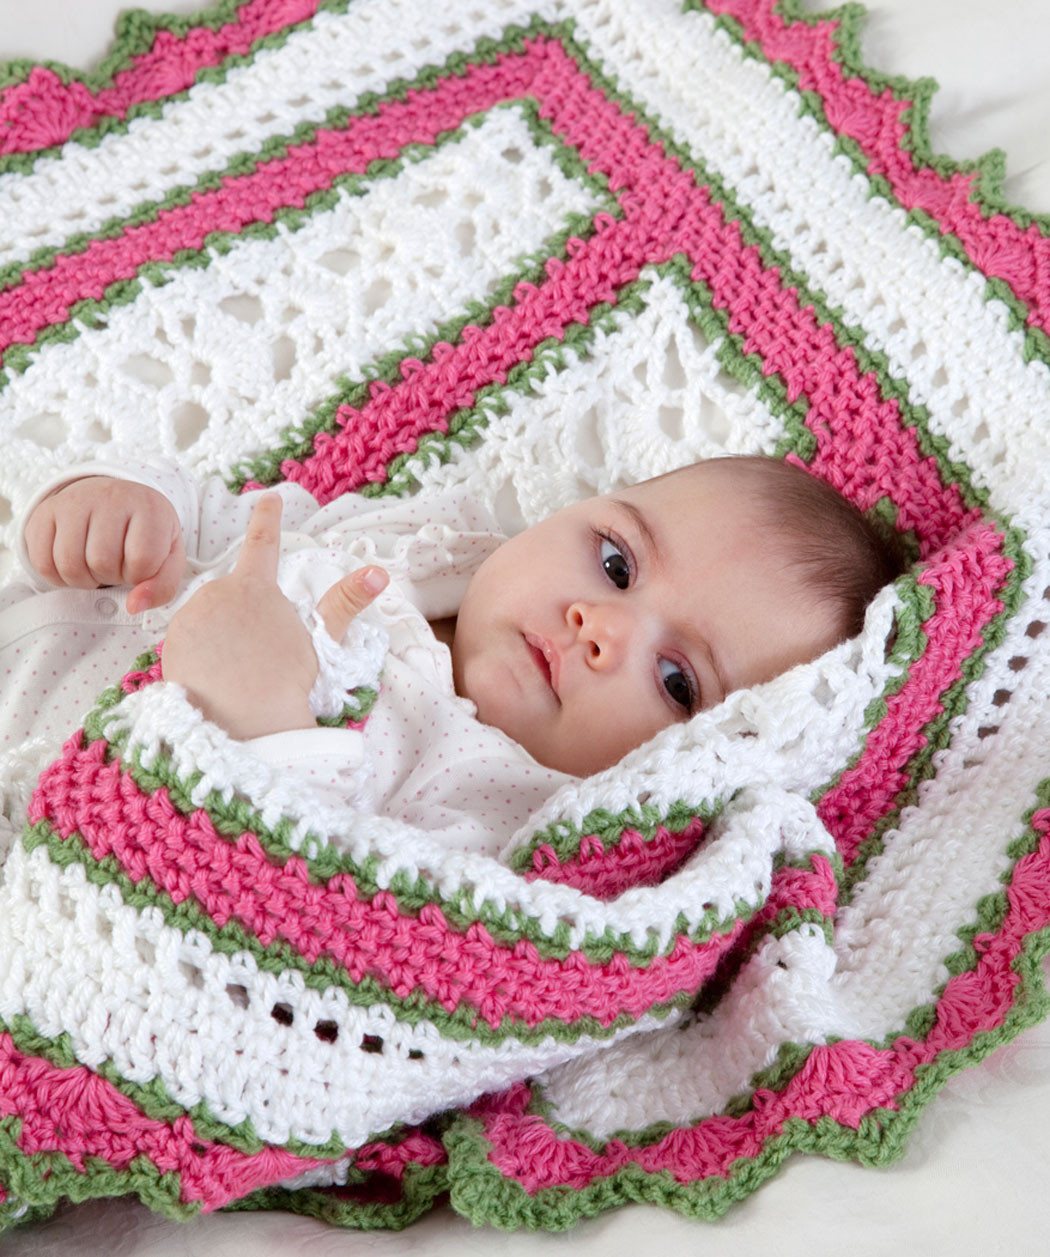 Baby Boy Crochet Blanket Patterns Best Of 10 Beautiful Baby Blanket Free Patterns Of Baby Boy Crochet Blanket Patterns Best Of 17 Best Images About Cute Cuddly Blankets On Pinterest